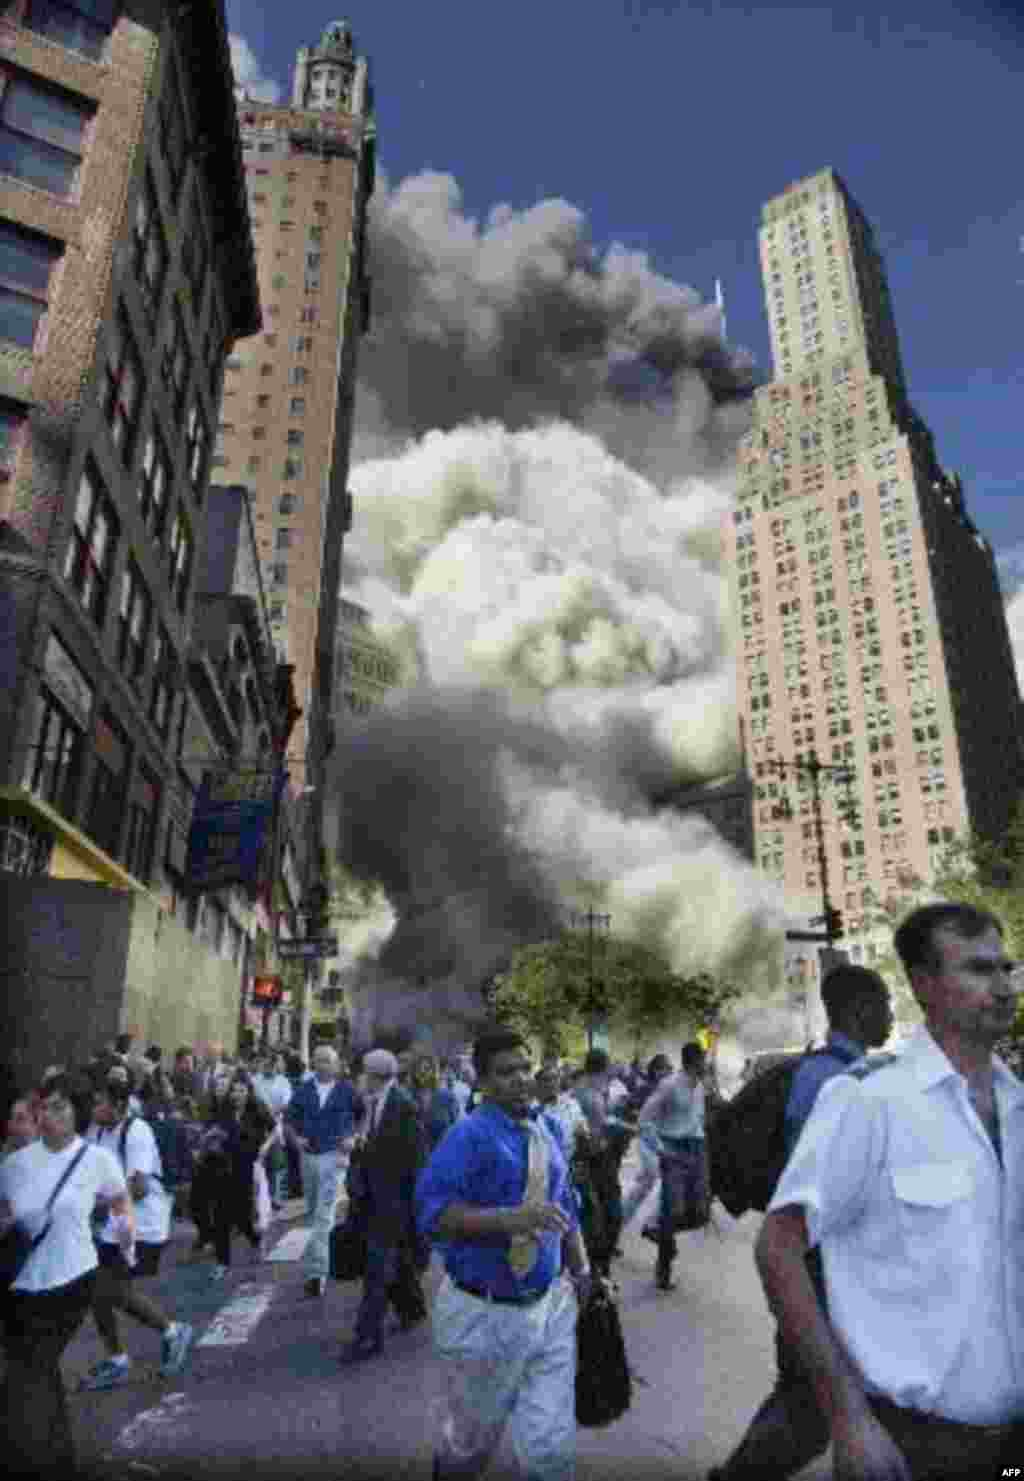 Pedestrians flee the area of the World Trade Center as the center's south tower collapses following a terrorist attack on the New York landmark Tuesday, Sept. 11, 2001. (AP Photo/Amy Sancetta) ITALY OUT